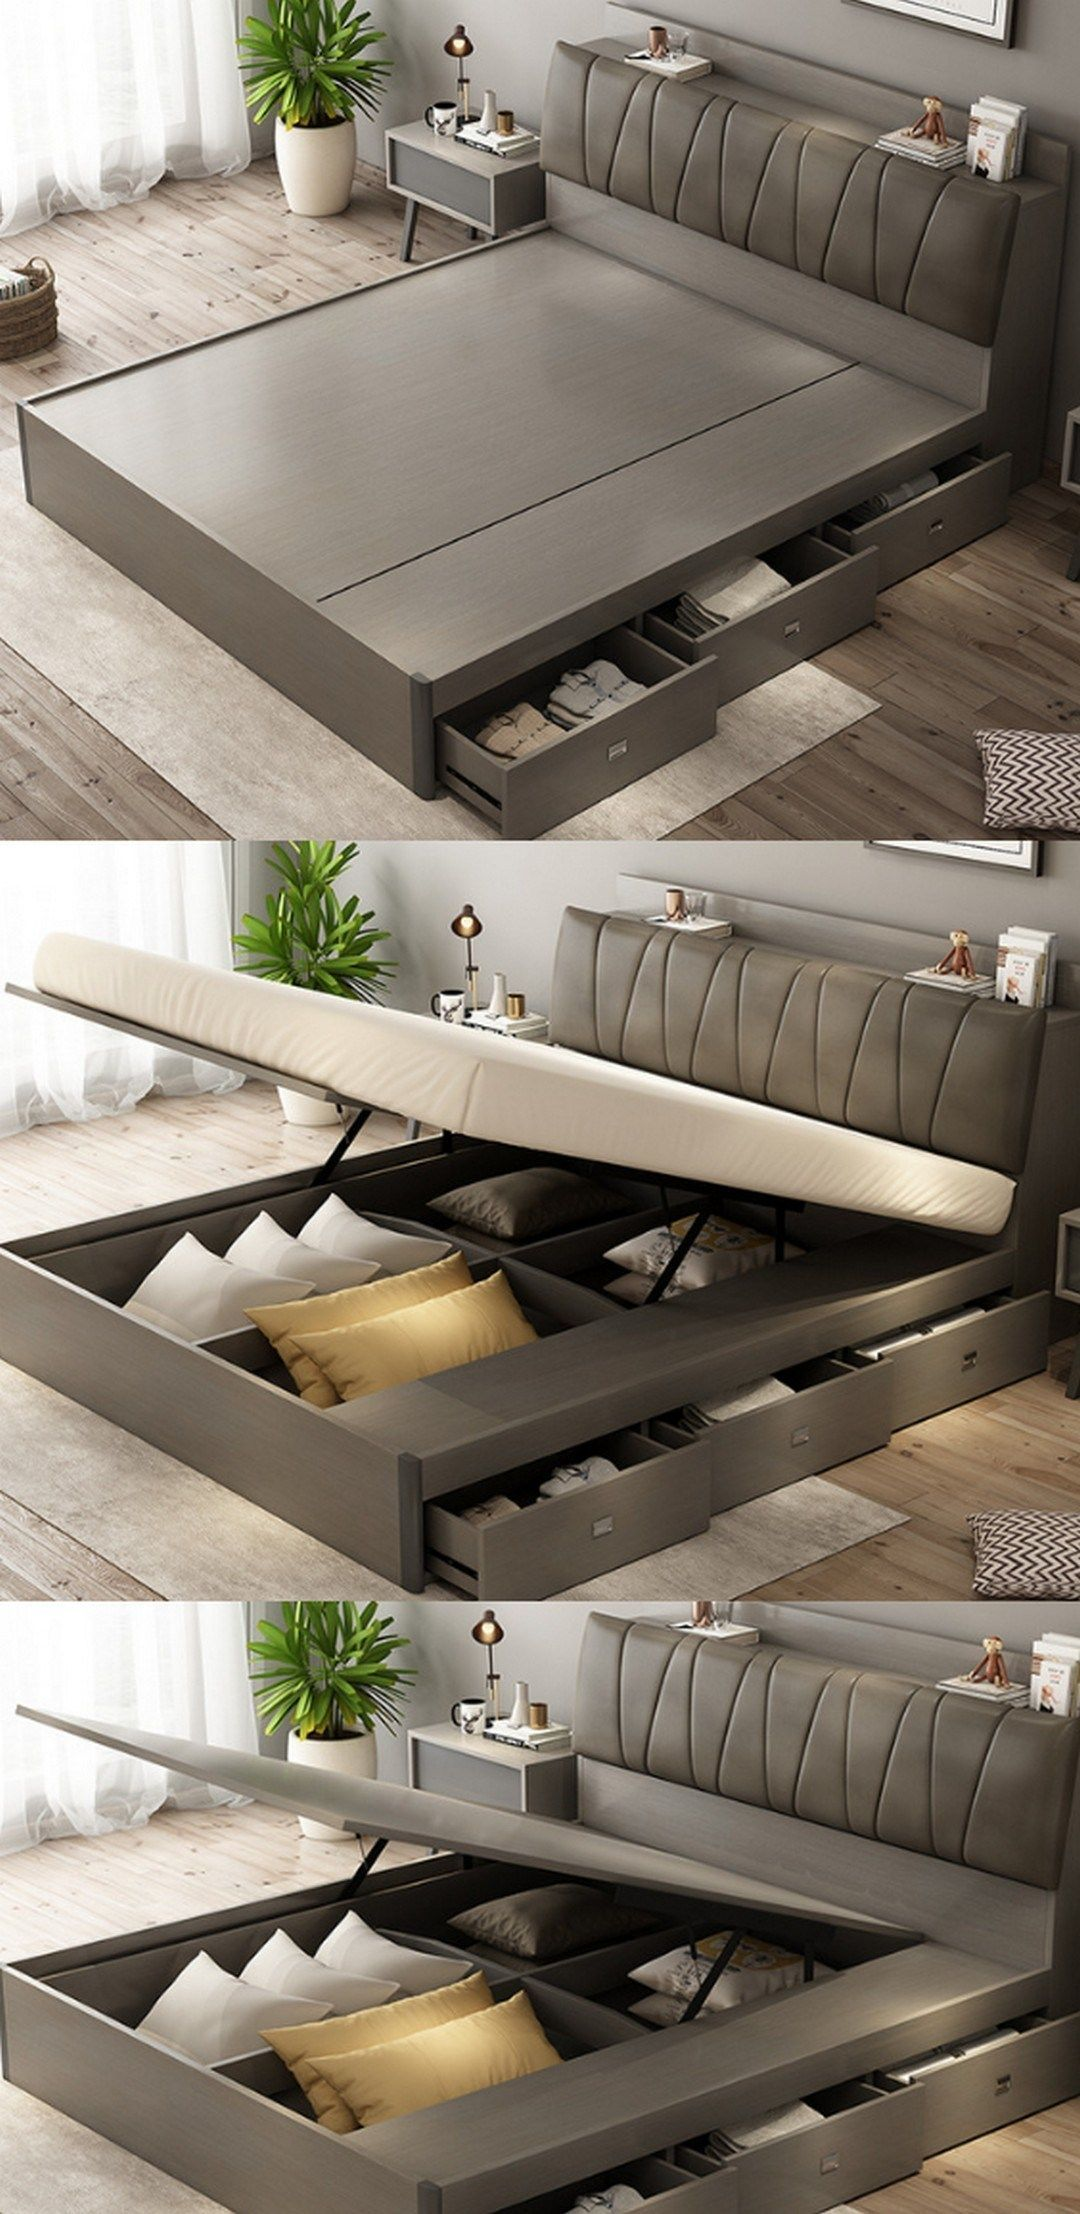 63 Awesome Double Bed Idea Farmhouse Room Bed Design Modern Wooden Bed Design Bed Furniture Design